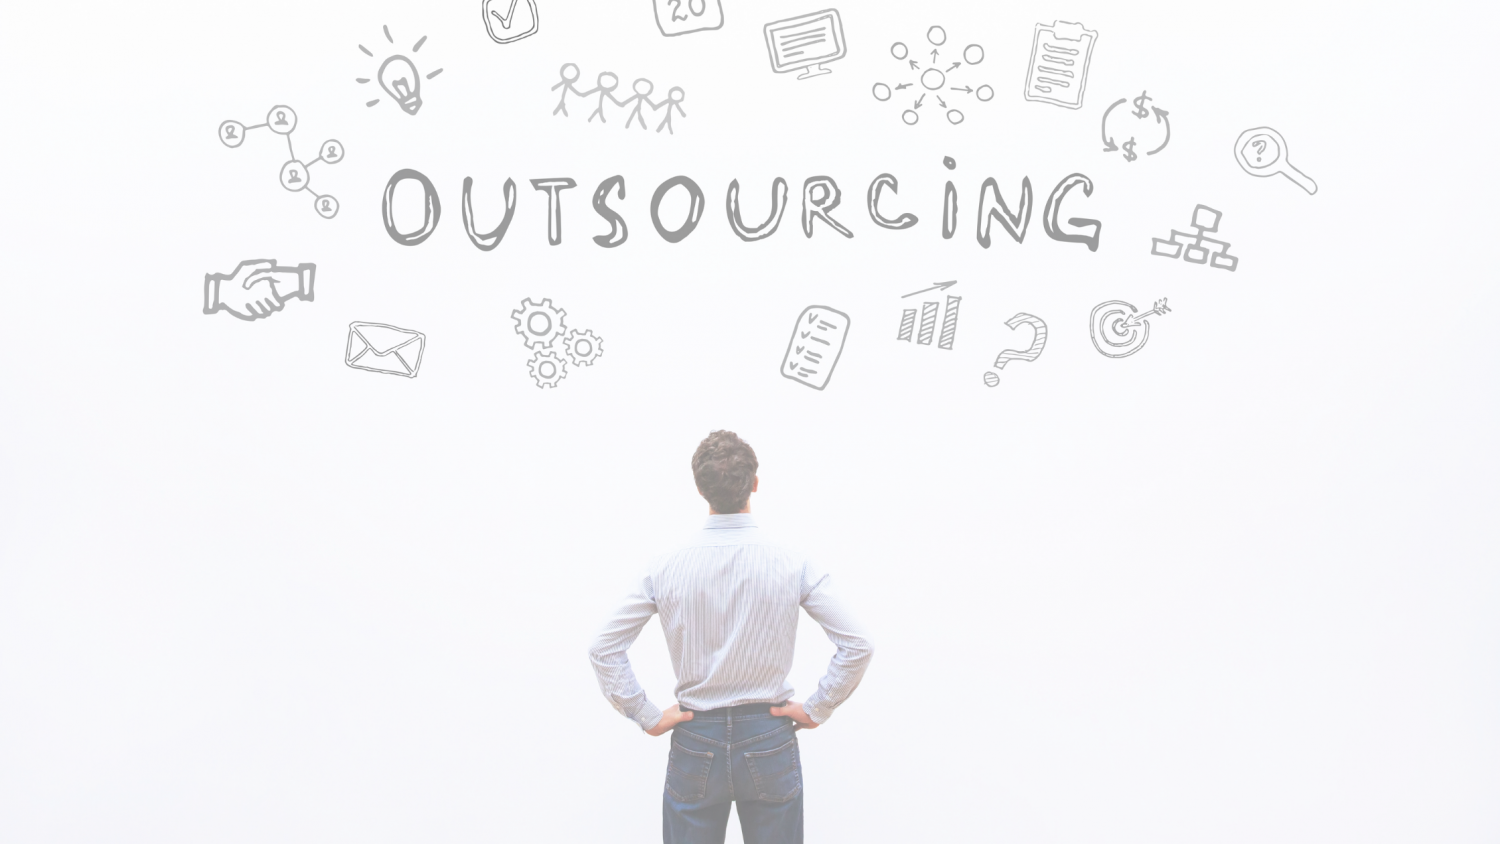 When is the right time to 'Cue' the Outsourcing?